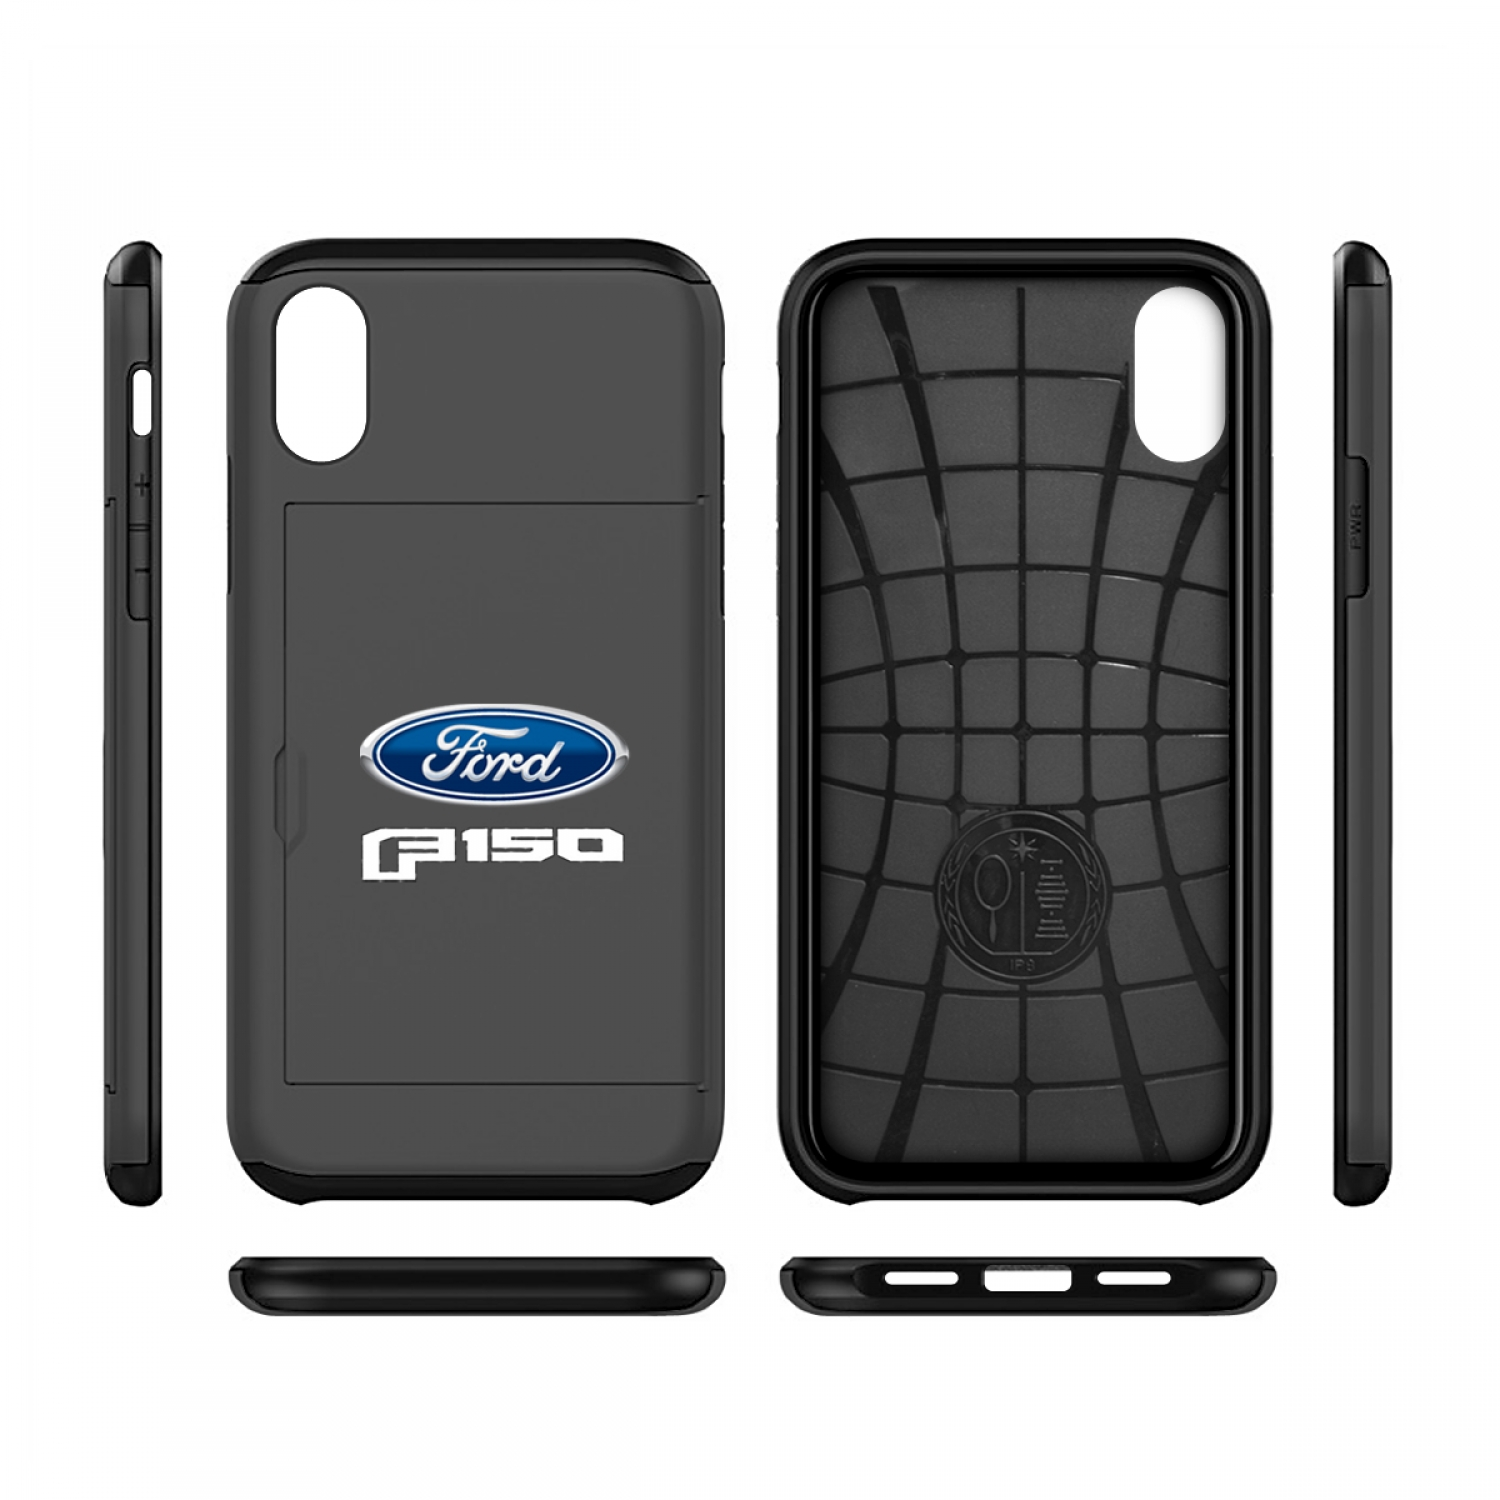 Ford F150 2015 iPhone X Black Shockproof with Card Holder Cell Phone Case